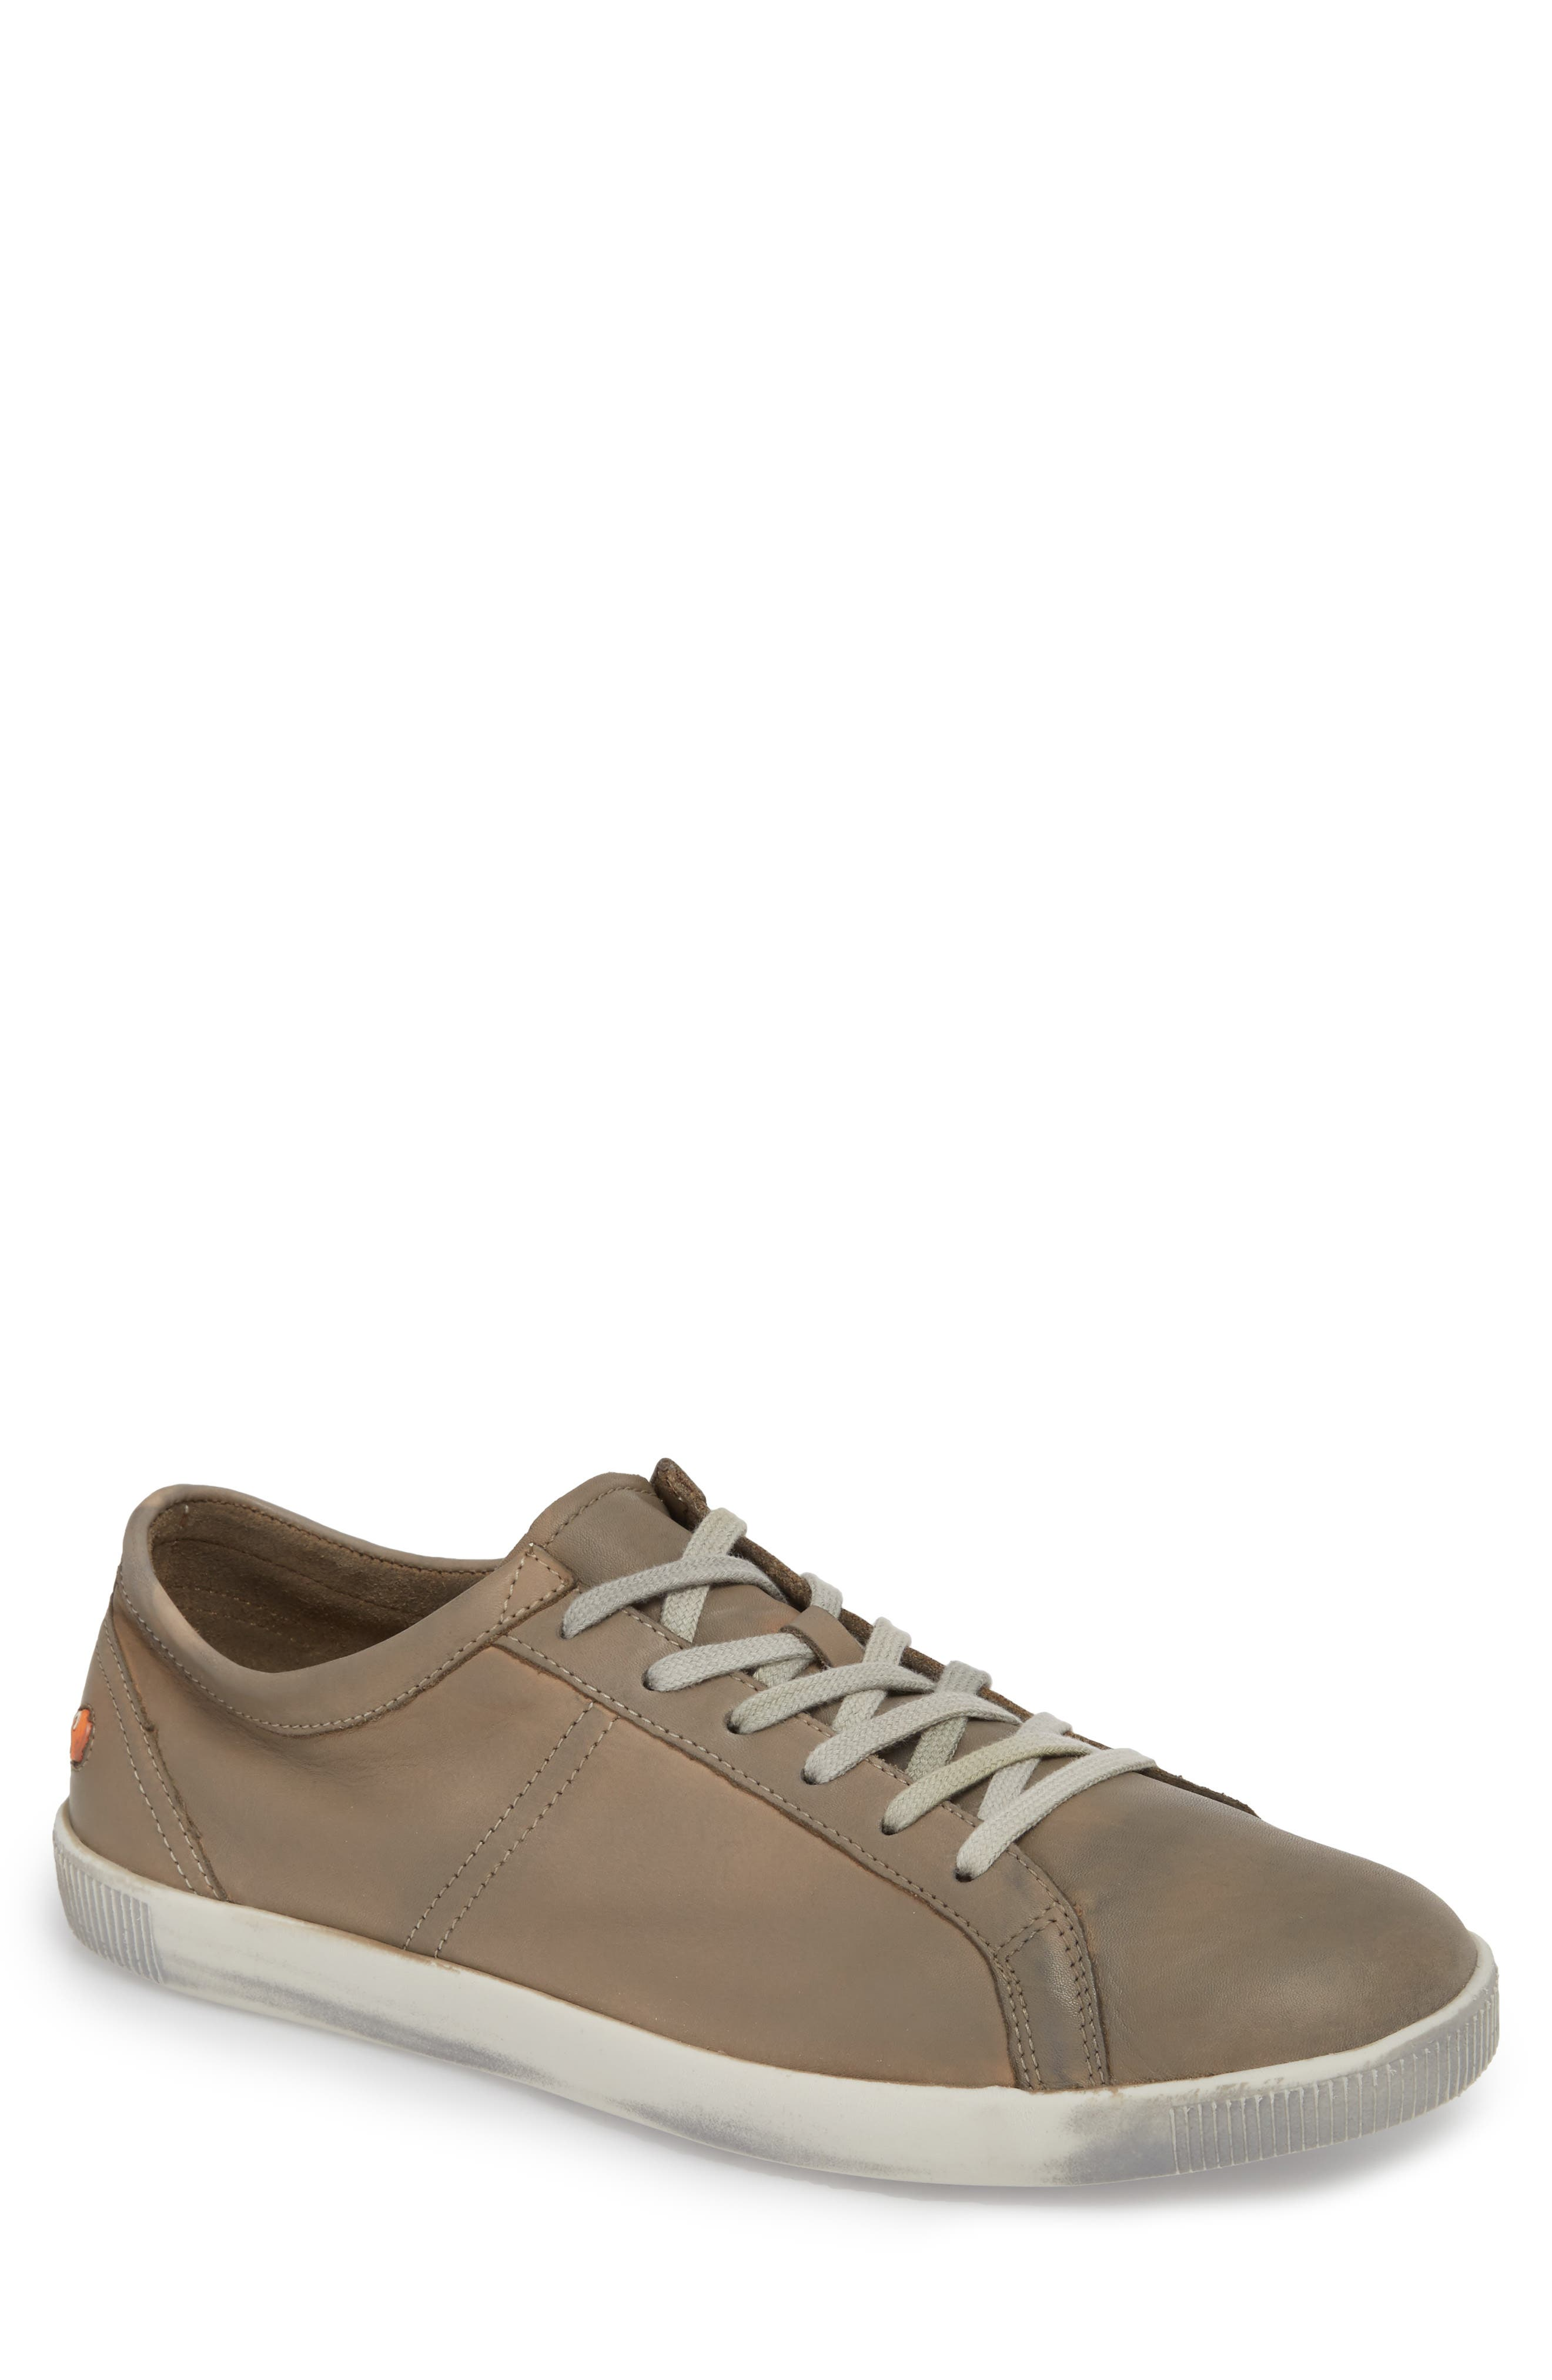 Tom Sneaker,                             Main thumbnail 1, color,                             Taupe Leather